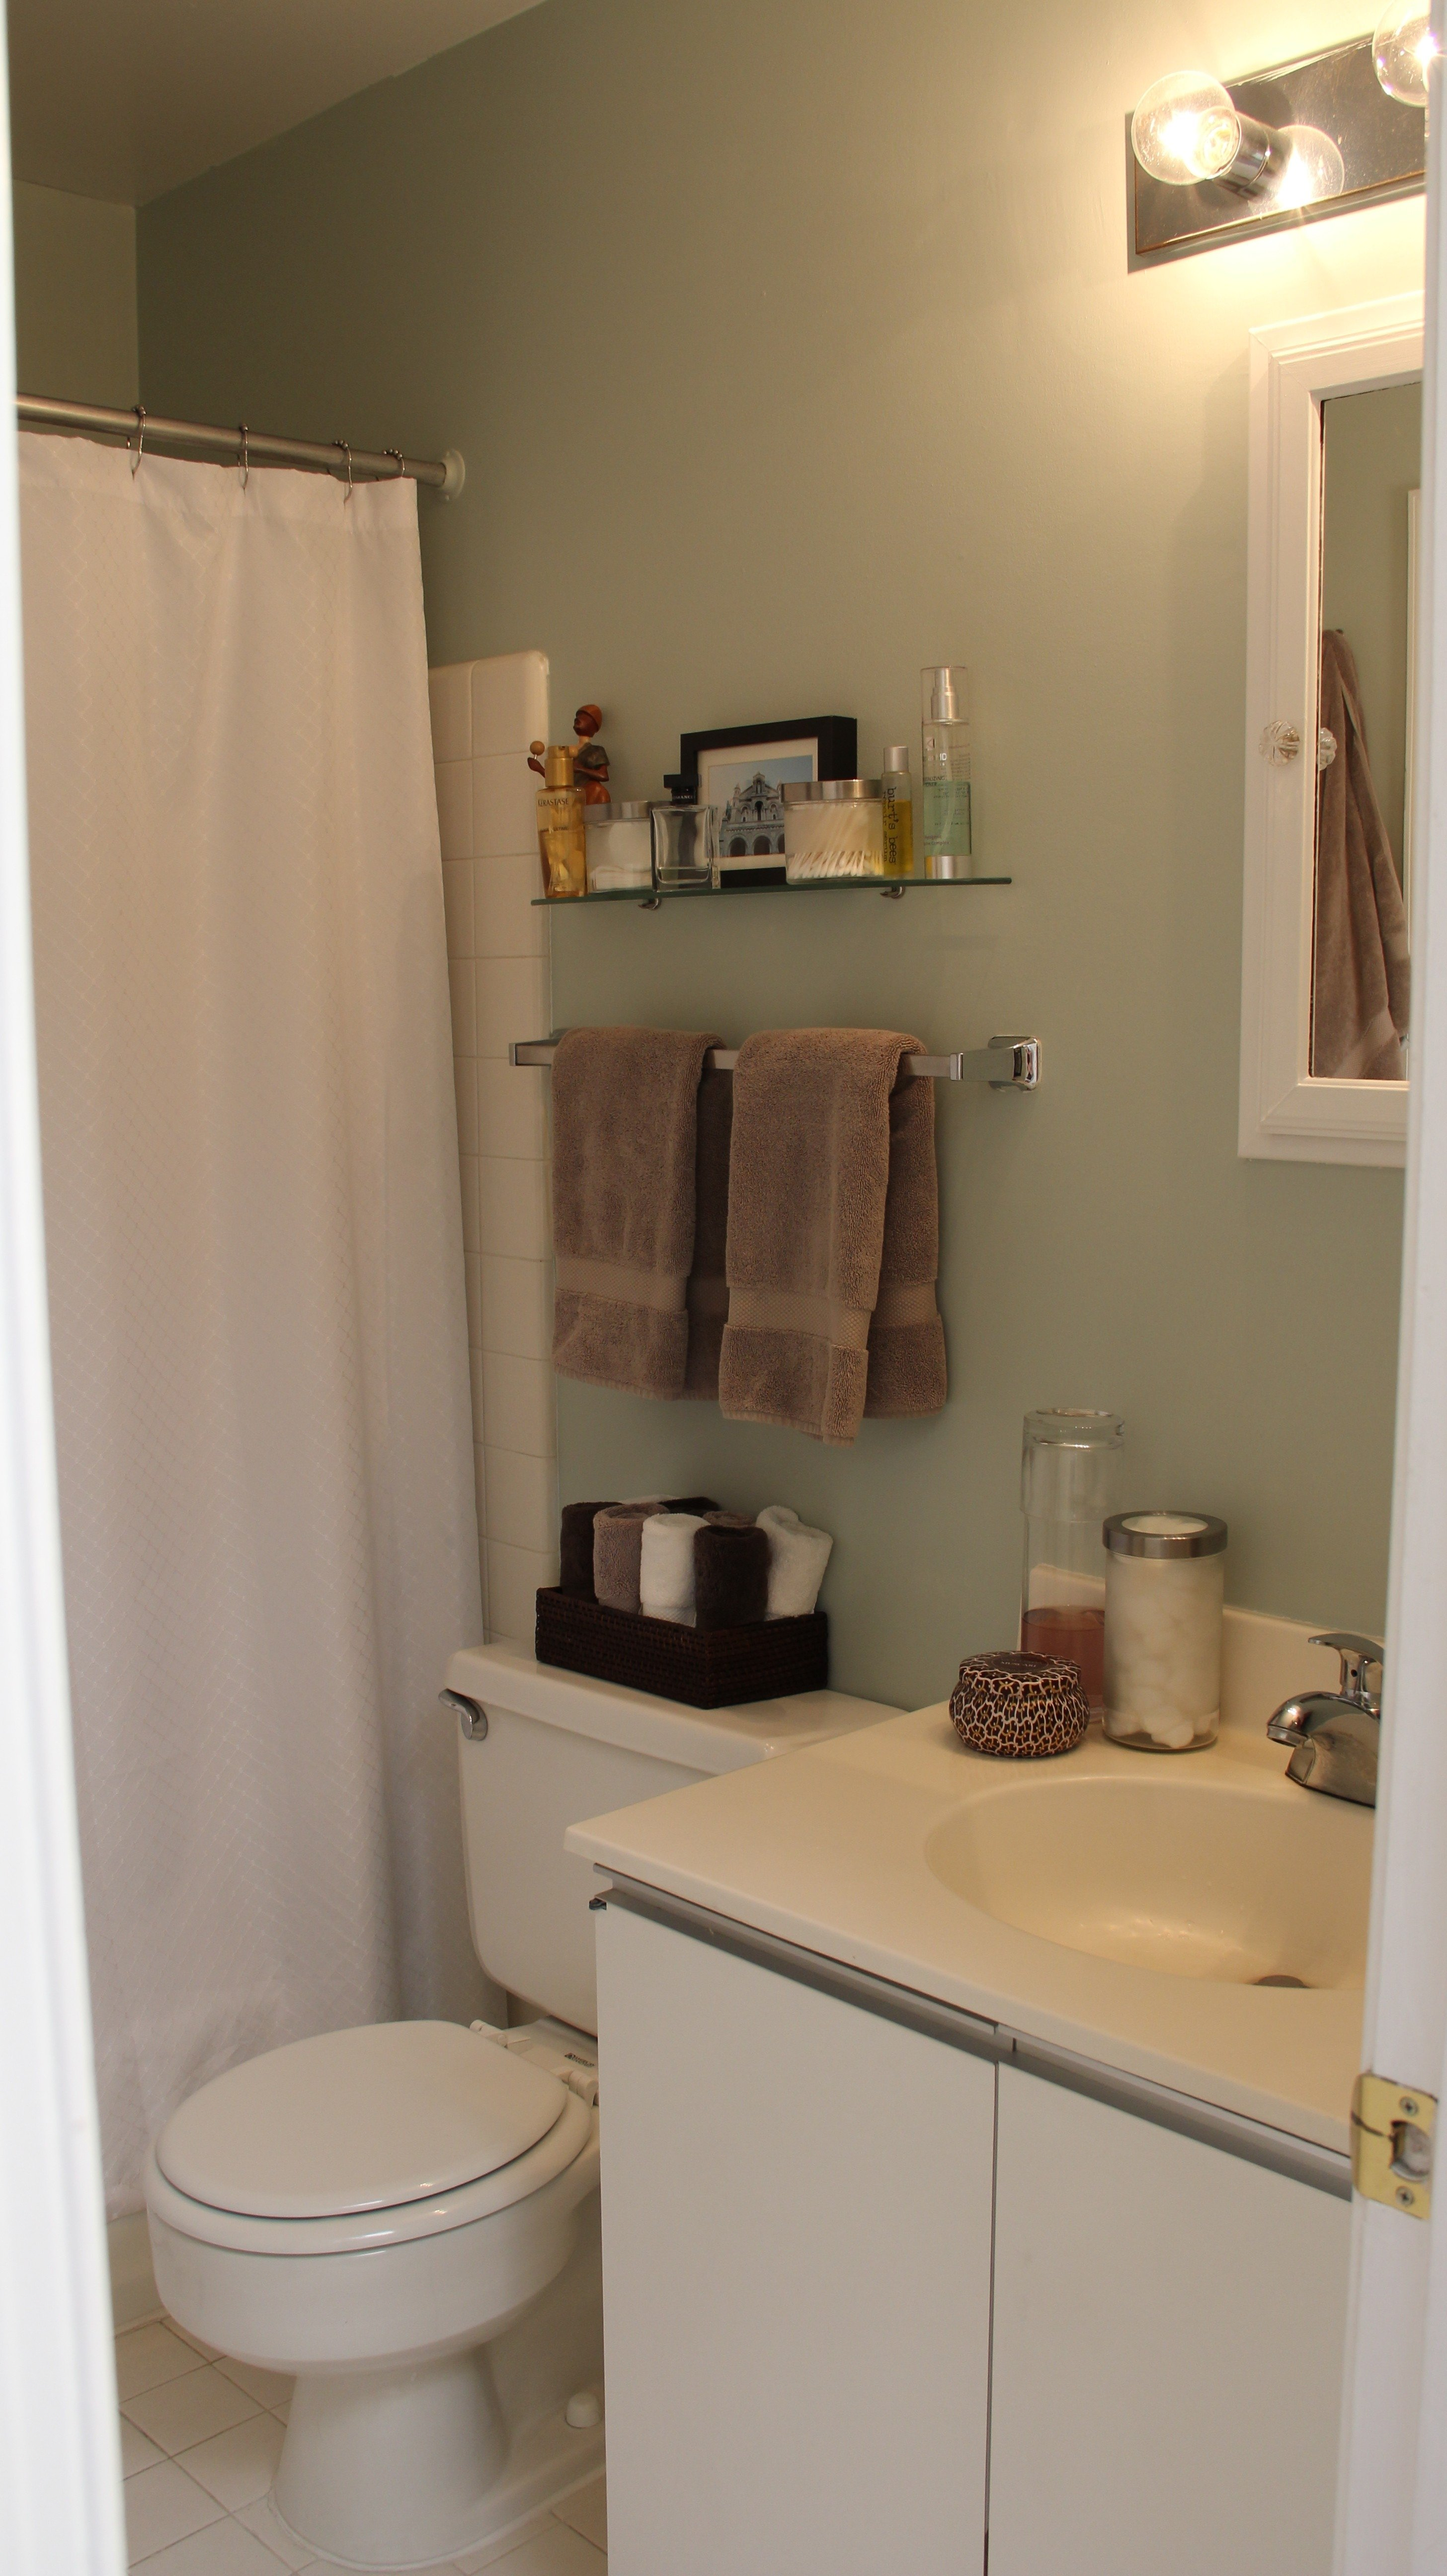 10 Famous Small Apartment Bathroom Decorating Ideas collection of solutions bathroom small apartment bathroom ideas